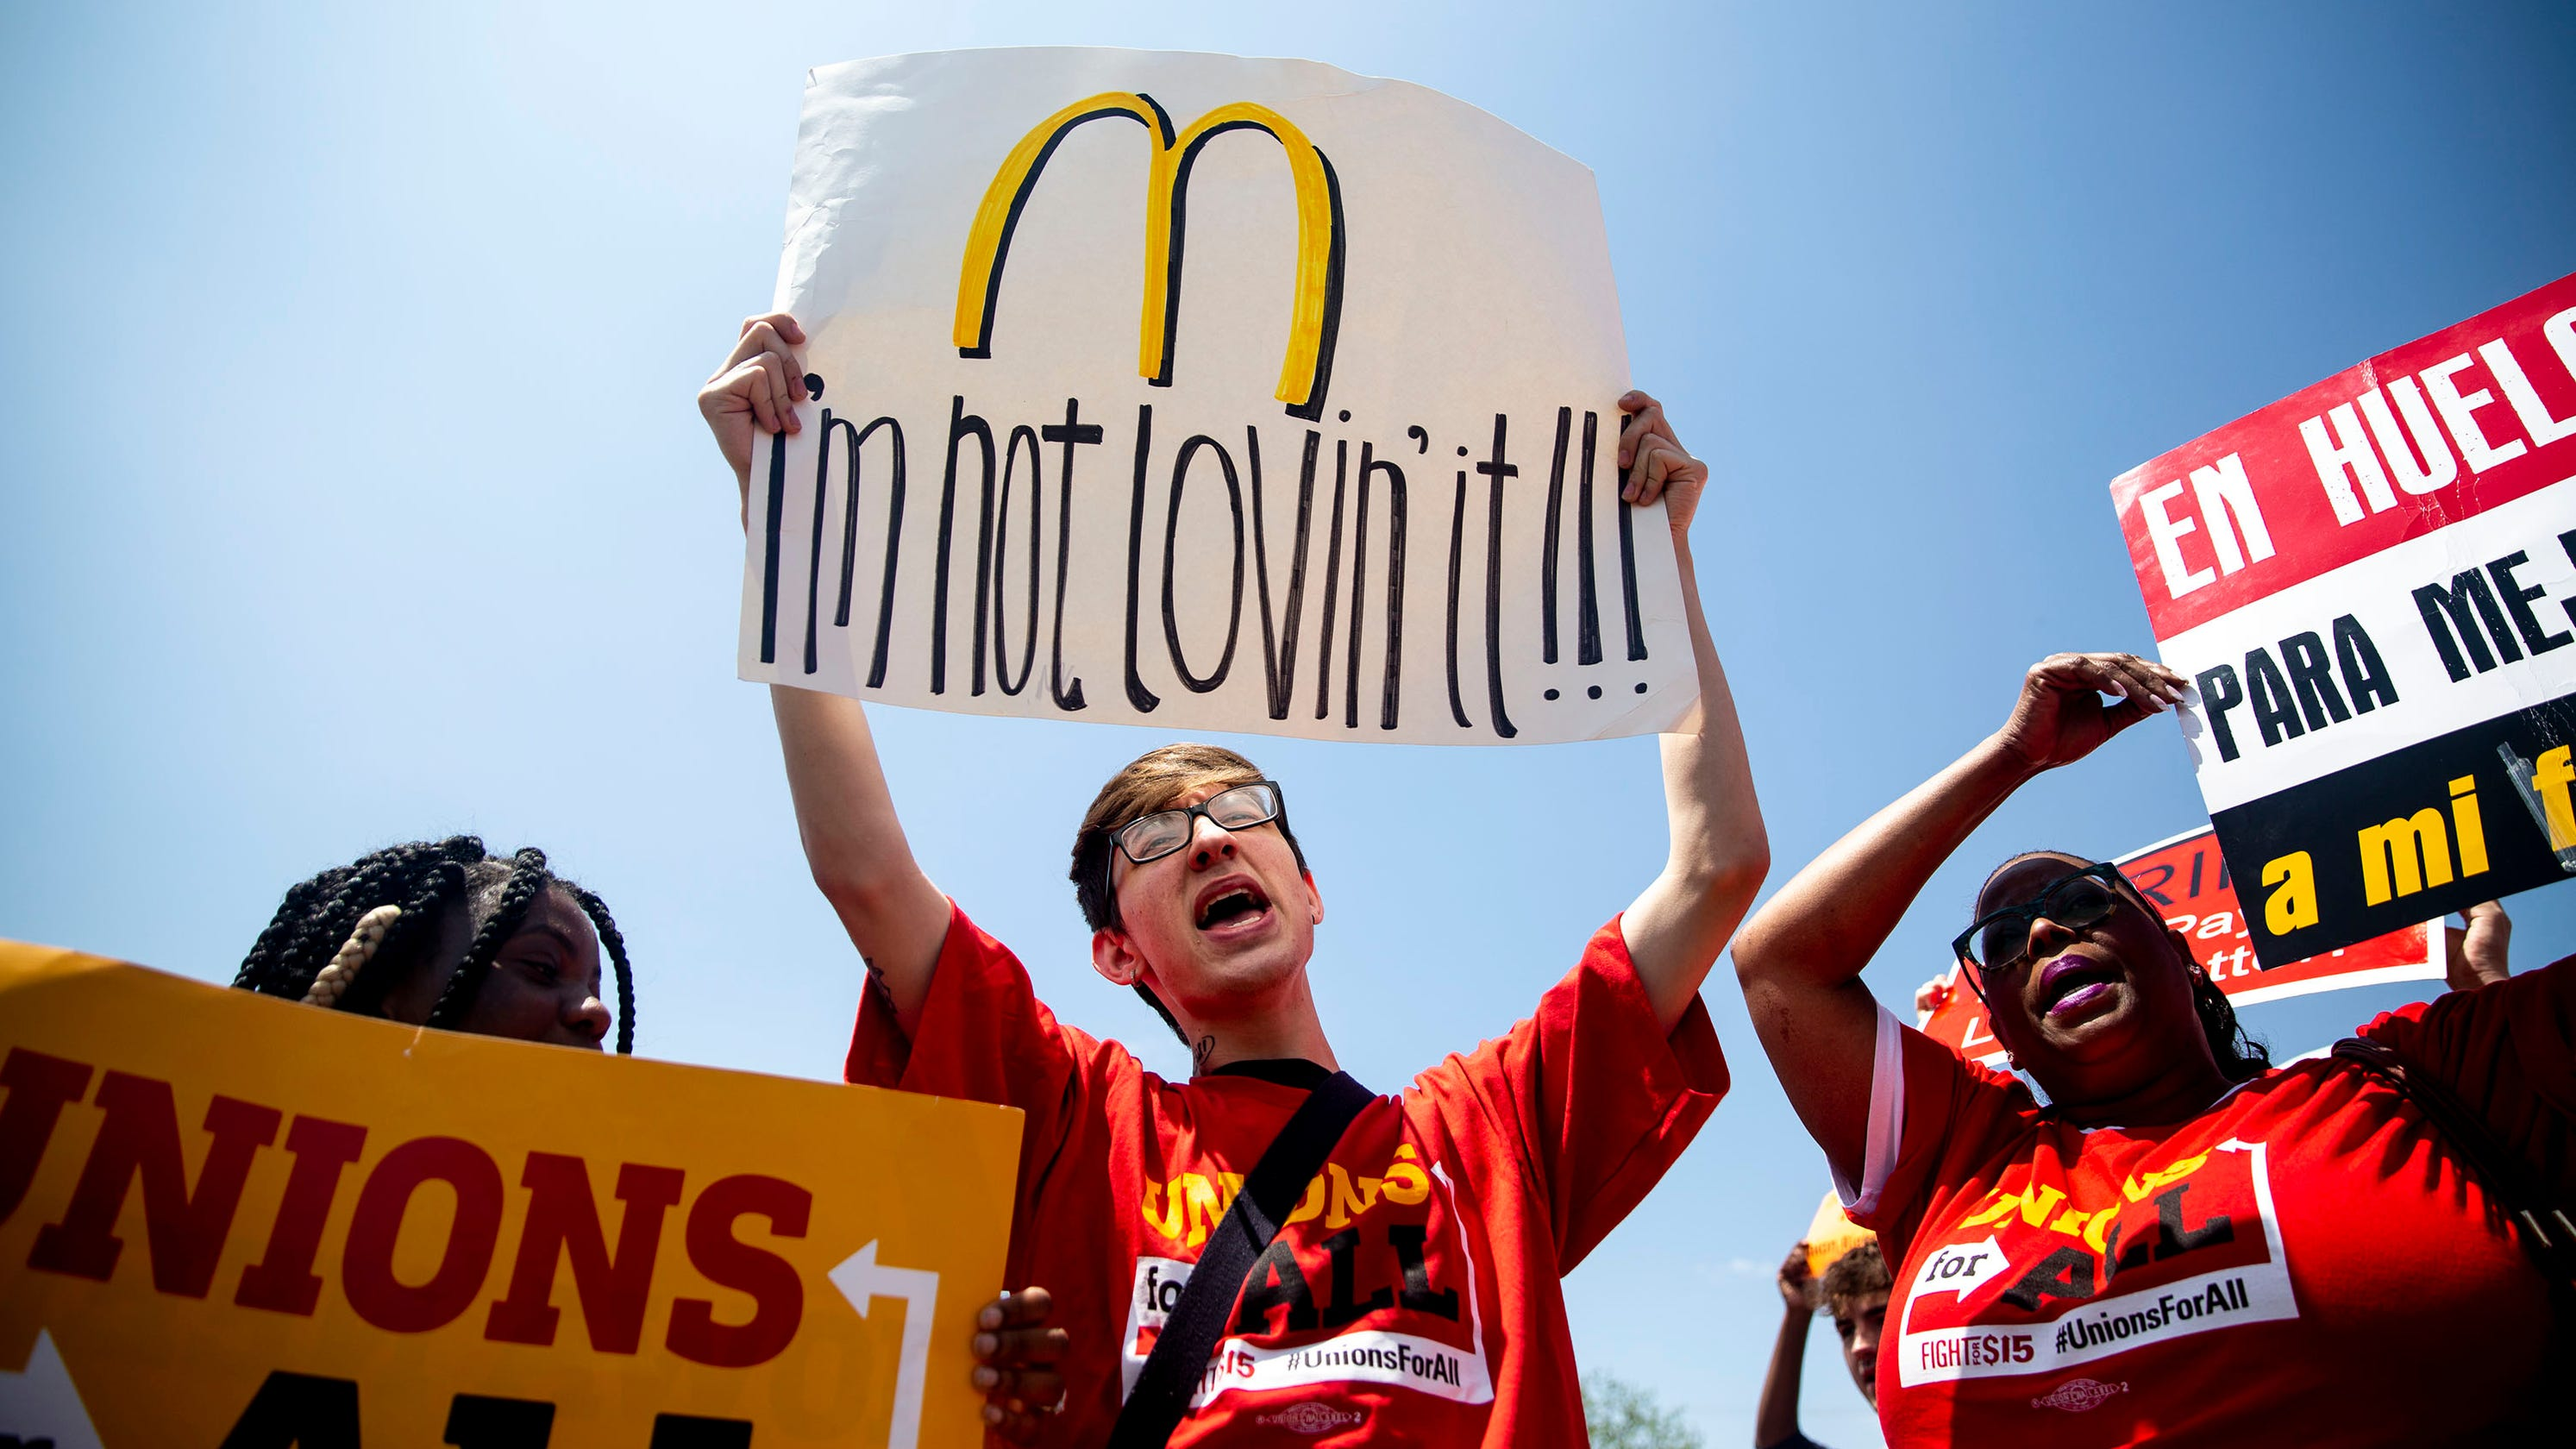 Mcdonalds New Uniform 2020 Fight for $15: 2020 candidates slam McDonald's over workers pay